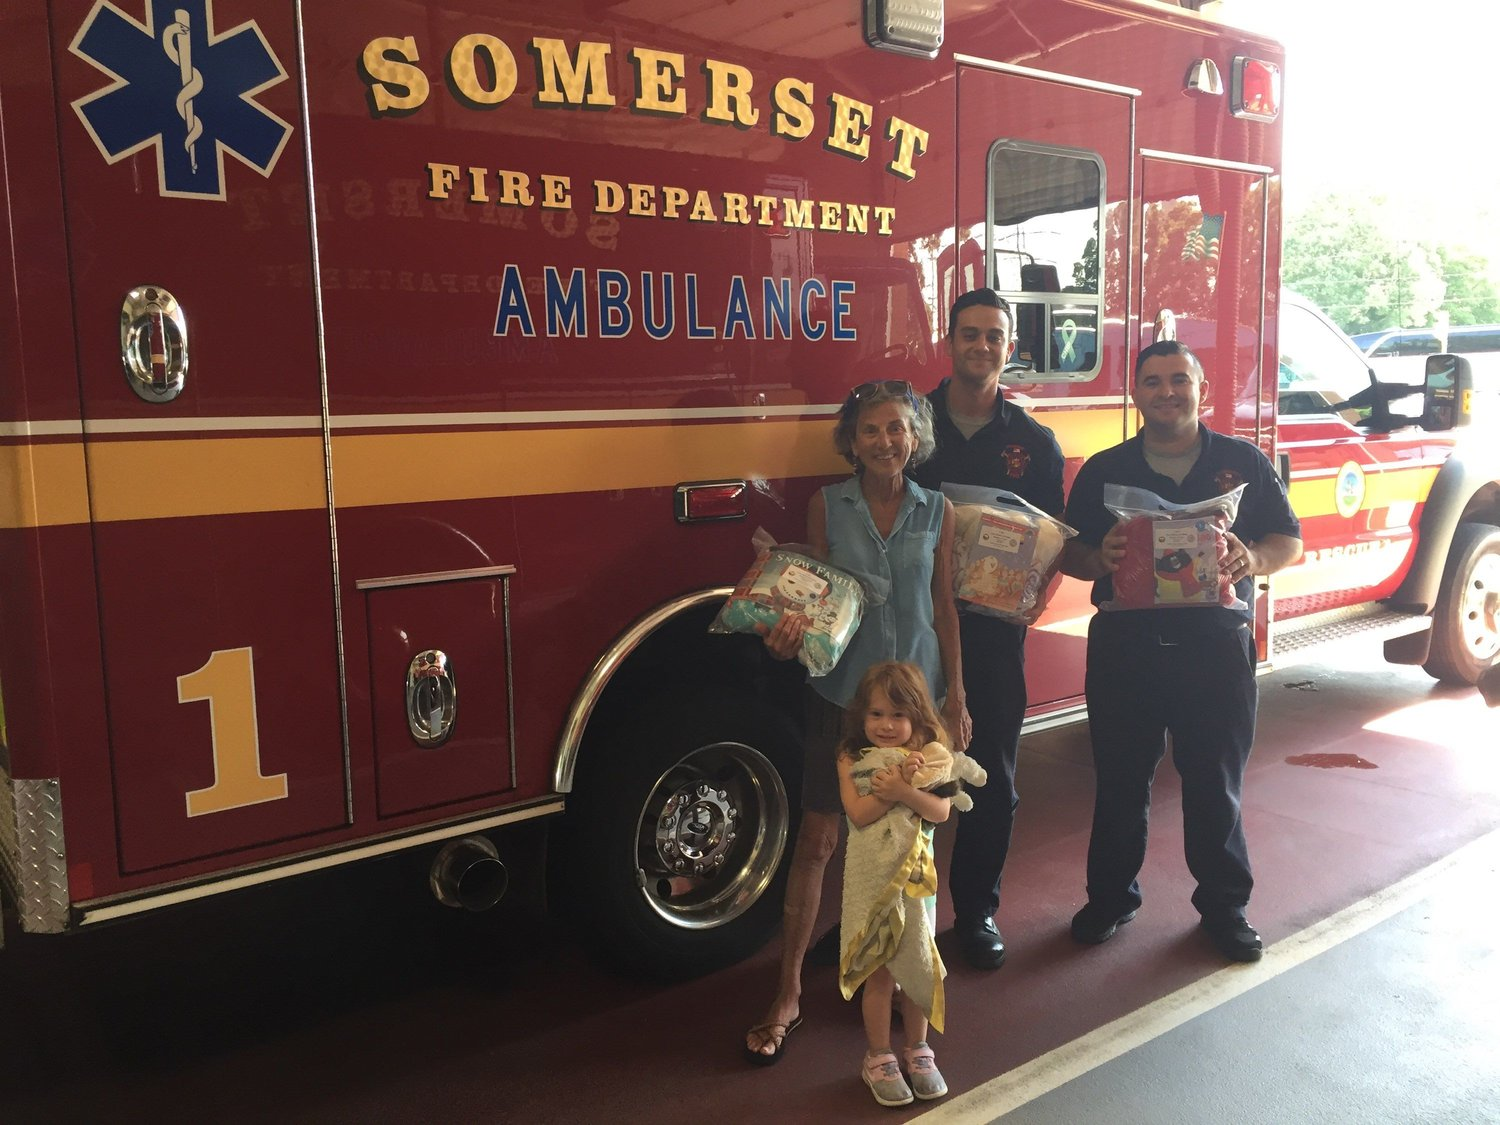 Somerset Fire Department Kathleen Sampson with granddaughter Brooklyn, firefighters Justin Raulino, & Jordan DeMelo